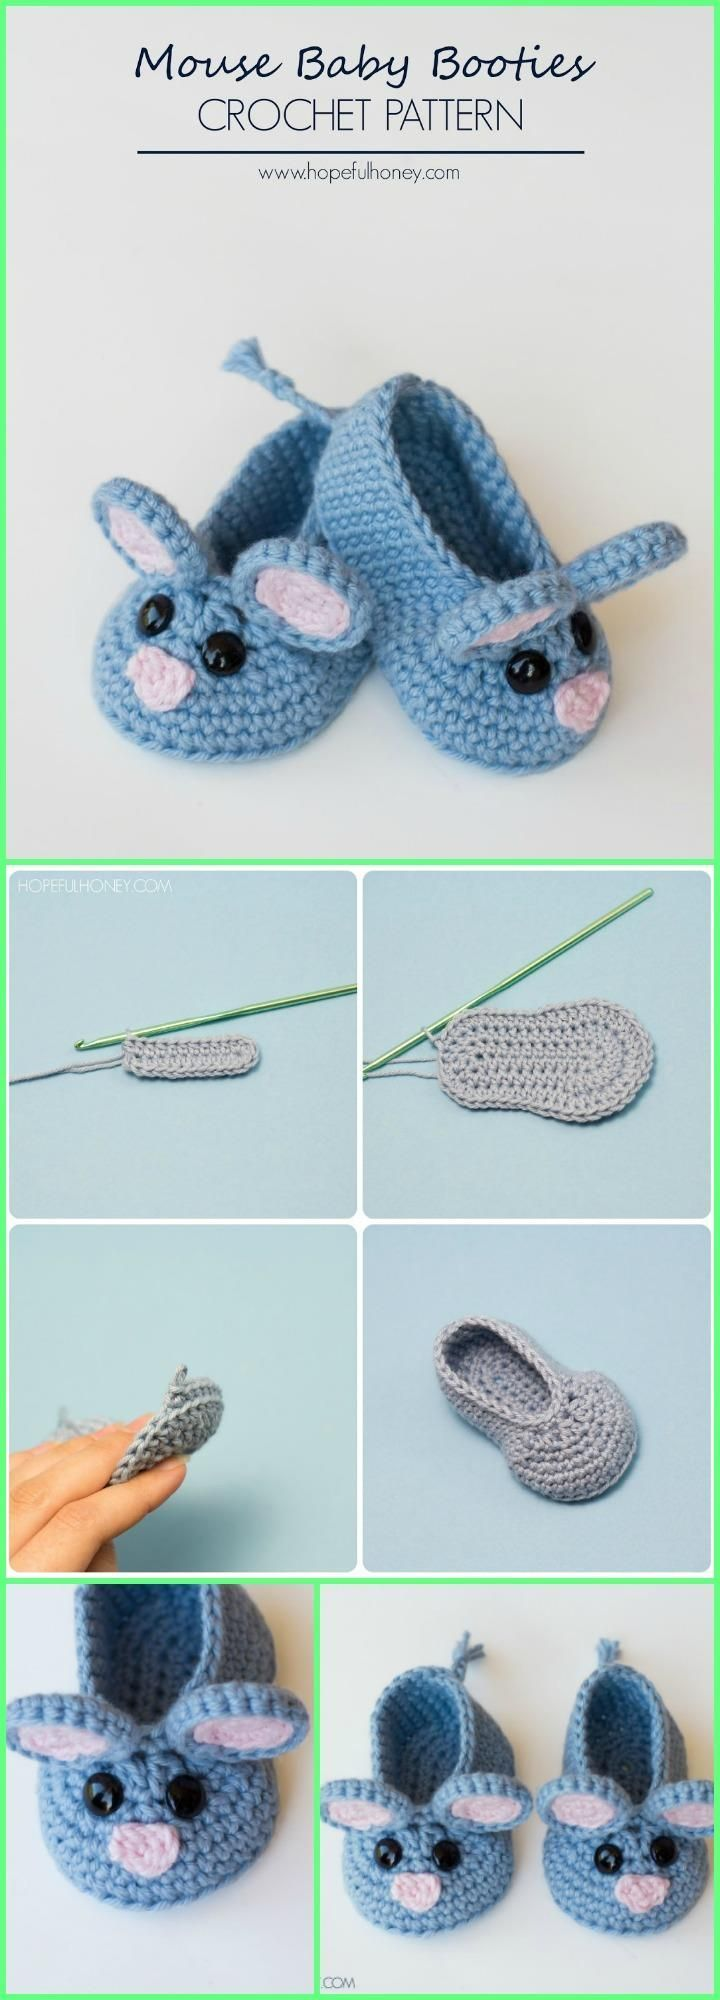 These 40 free crochet baby boo |